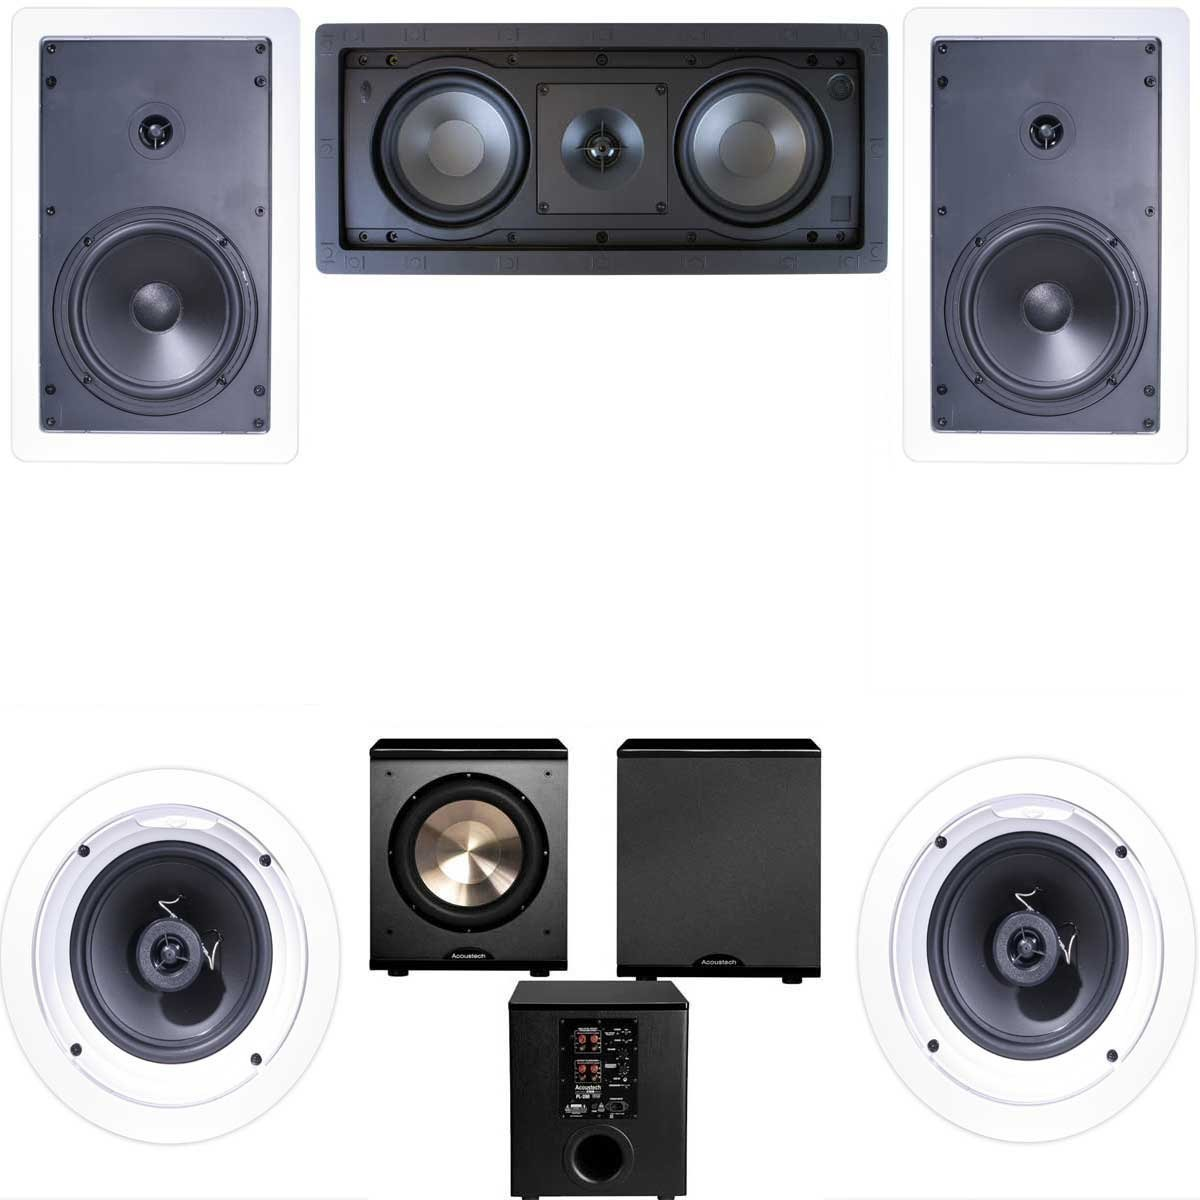 klipsch-r-1650-w-in-wall-5-1-home-theater-system-speakers-under-1000